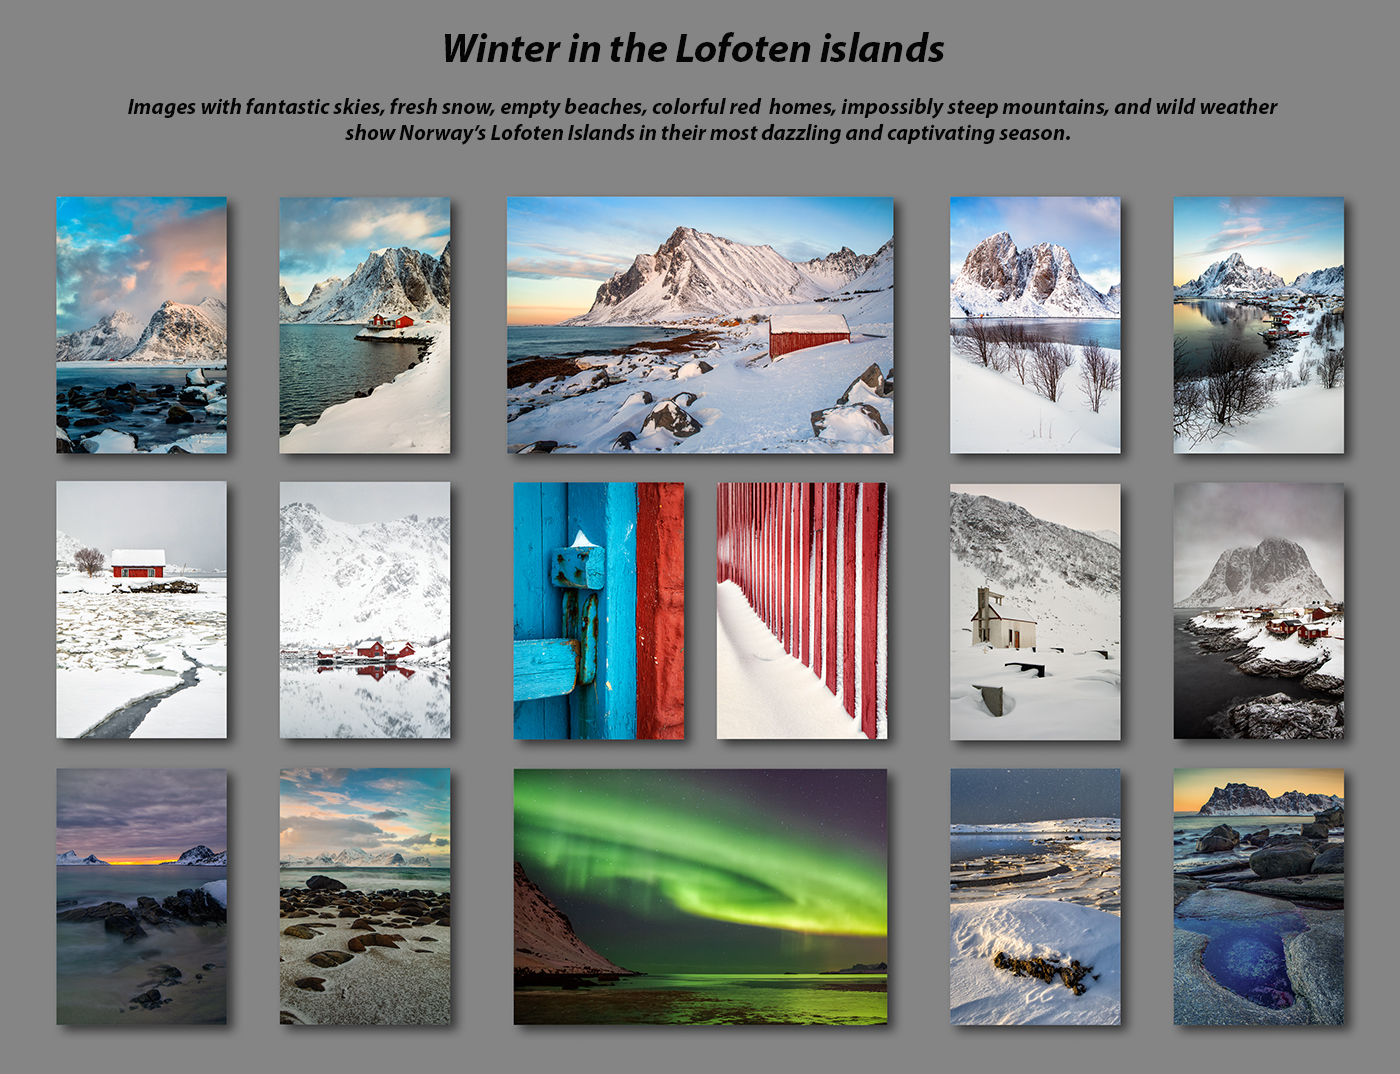 005 Overview Image Lofoten Islands V2 V3 TOPG Website